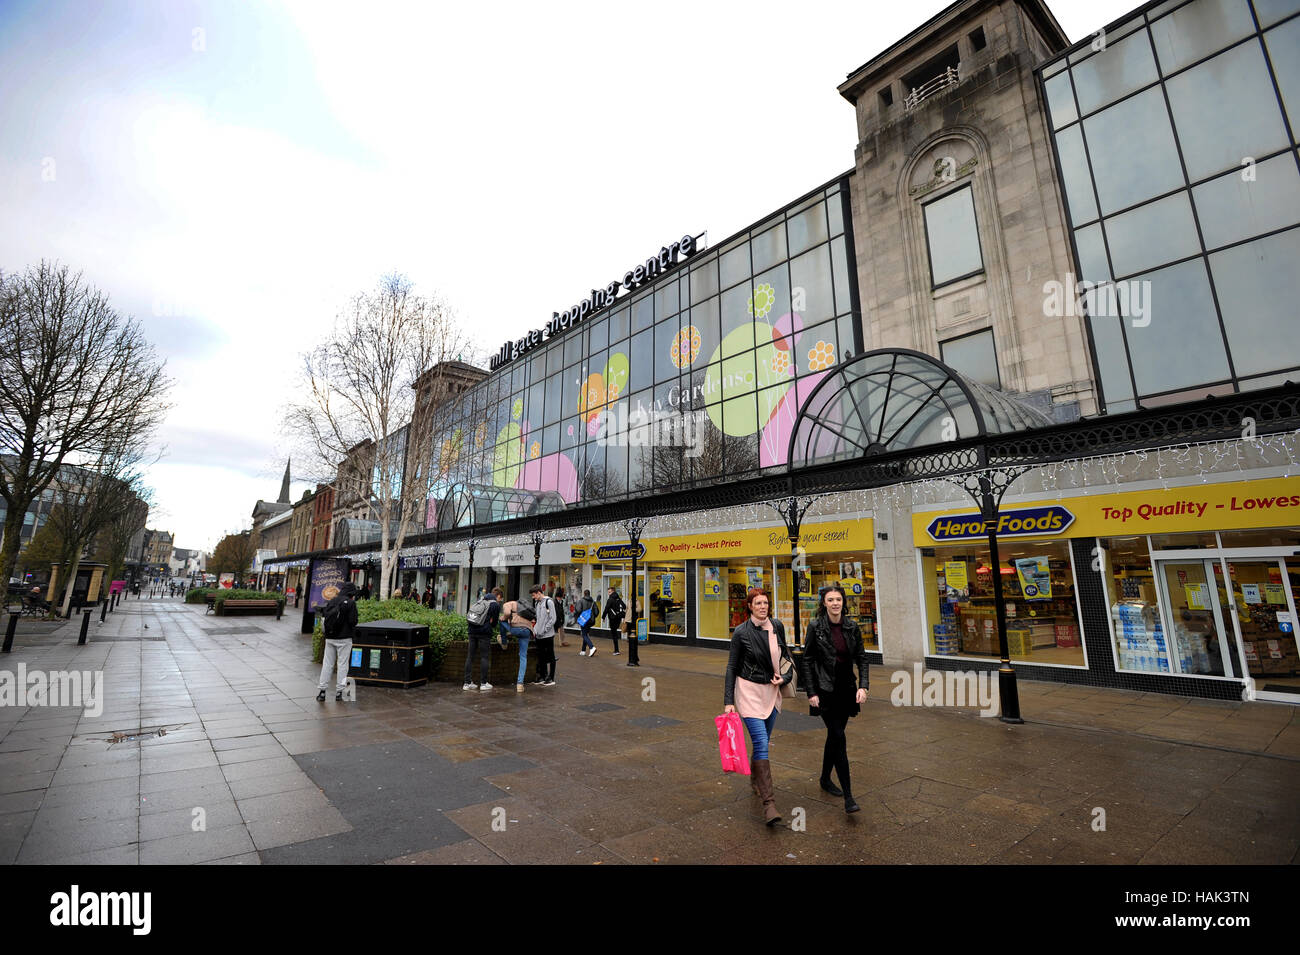 Millgate Shopping Centre,  Bury, Lancashire. Picture by Paul Heyes, Thursday December 01, 2016. - Stock Image